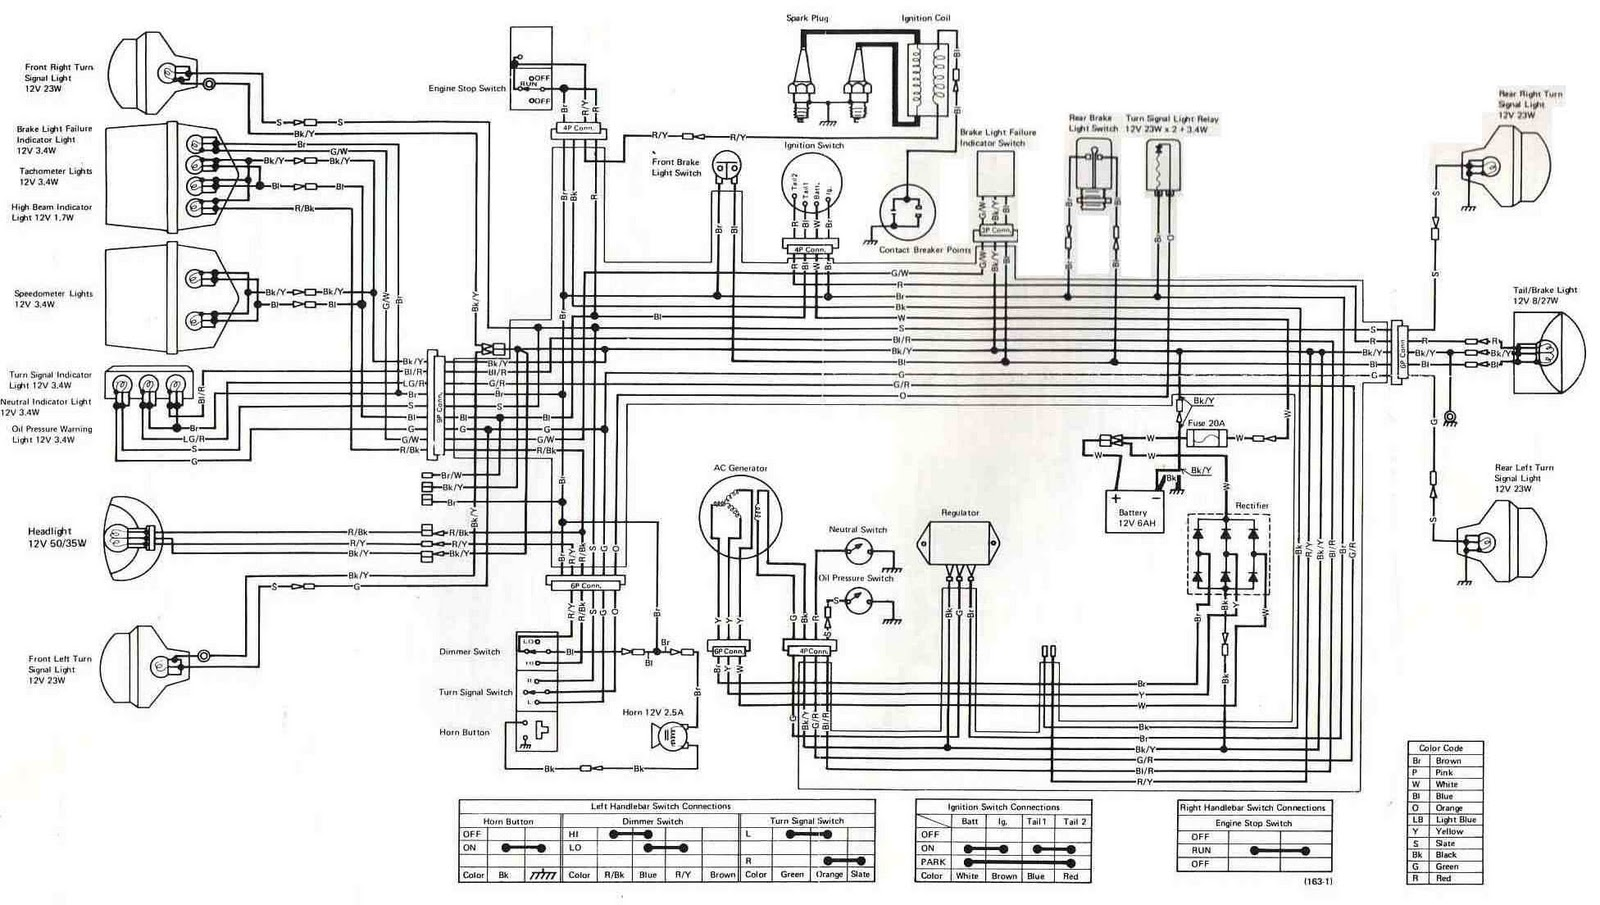 1982 kawasaki wiring diagrams 200 kawasaki klt 200 wiring diagram | all about wiring diagrams